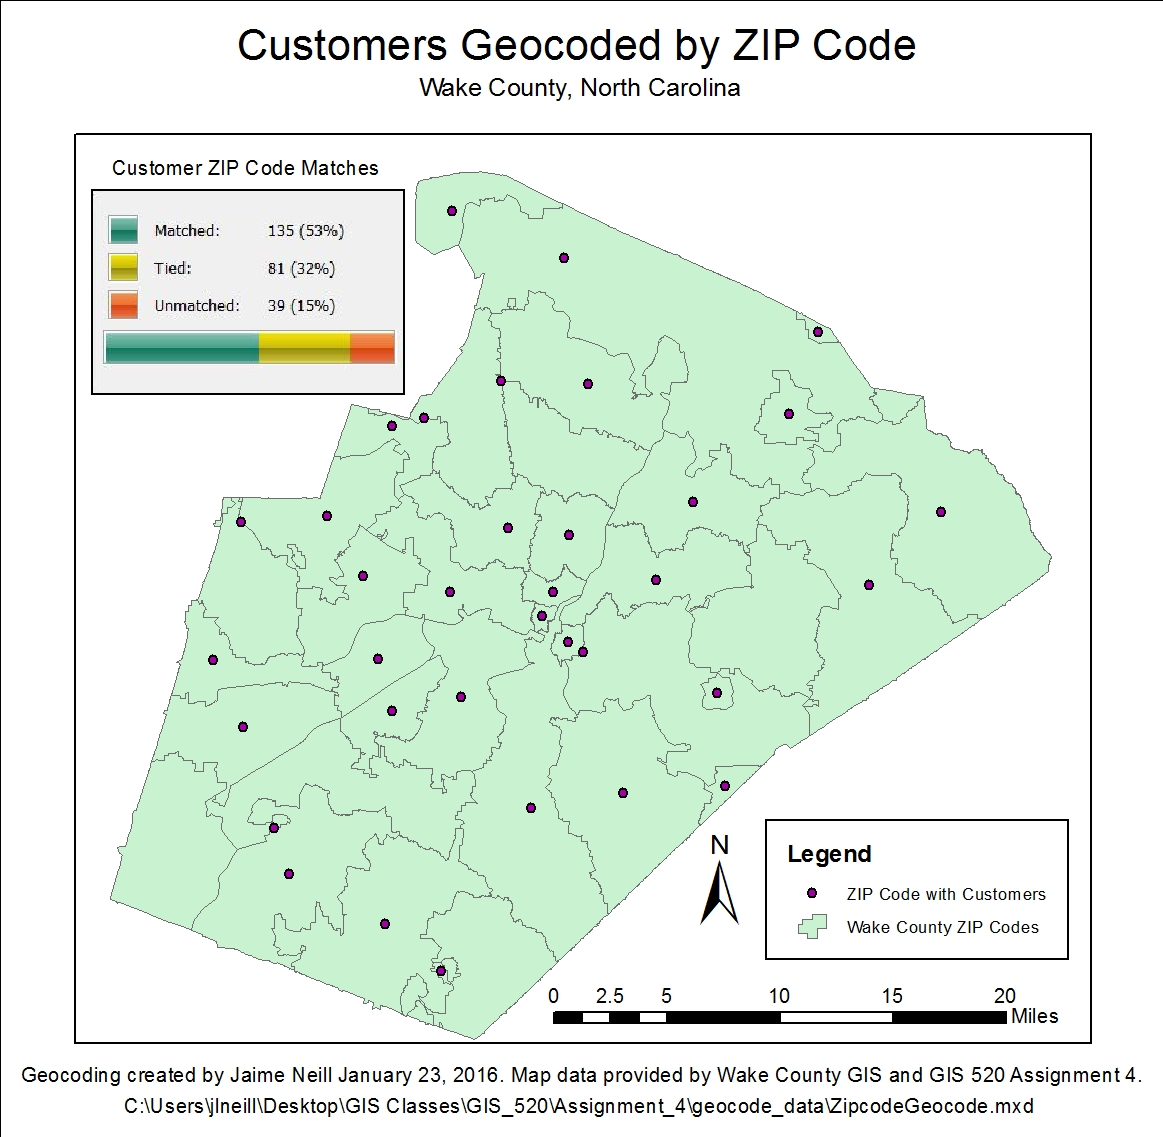 Geocoding Tabular Data | gis520